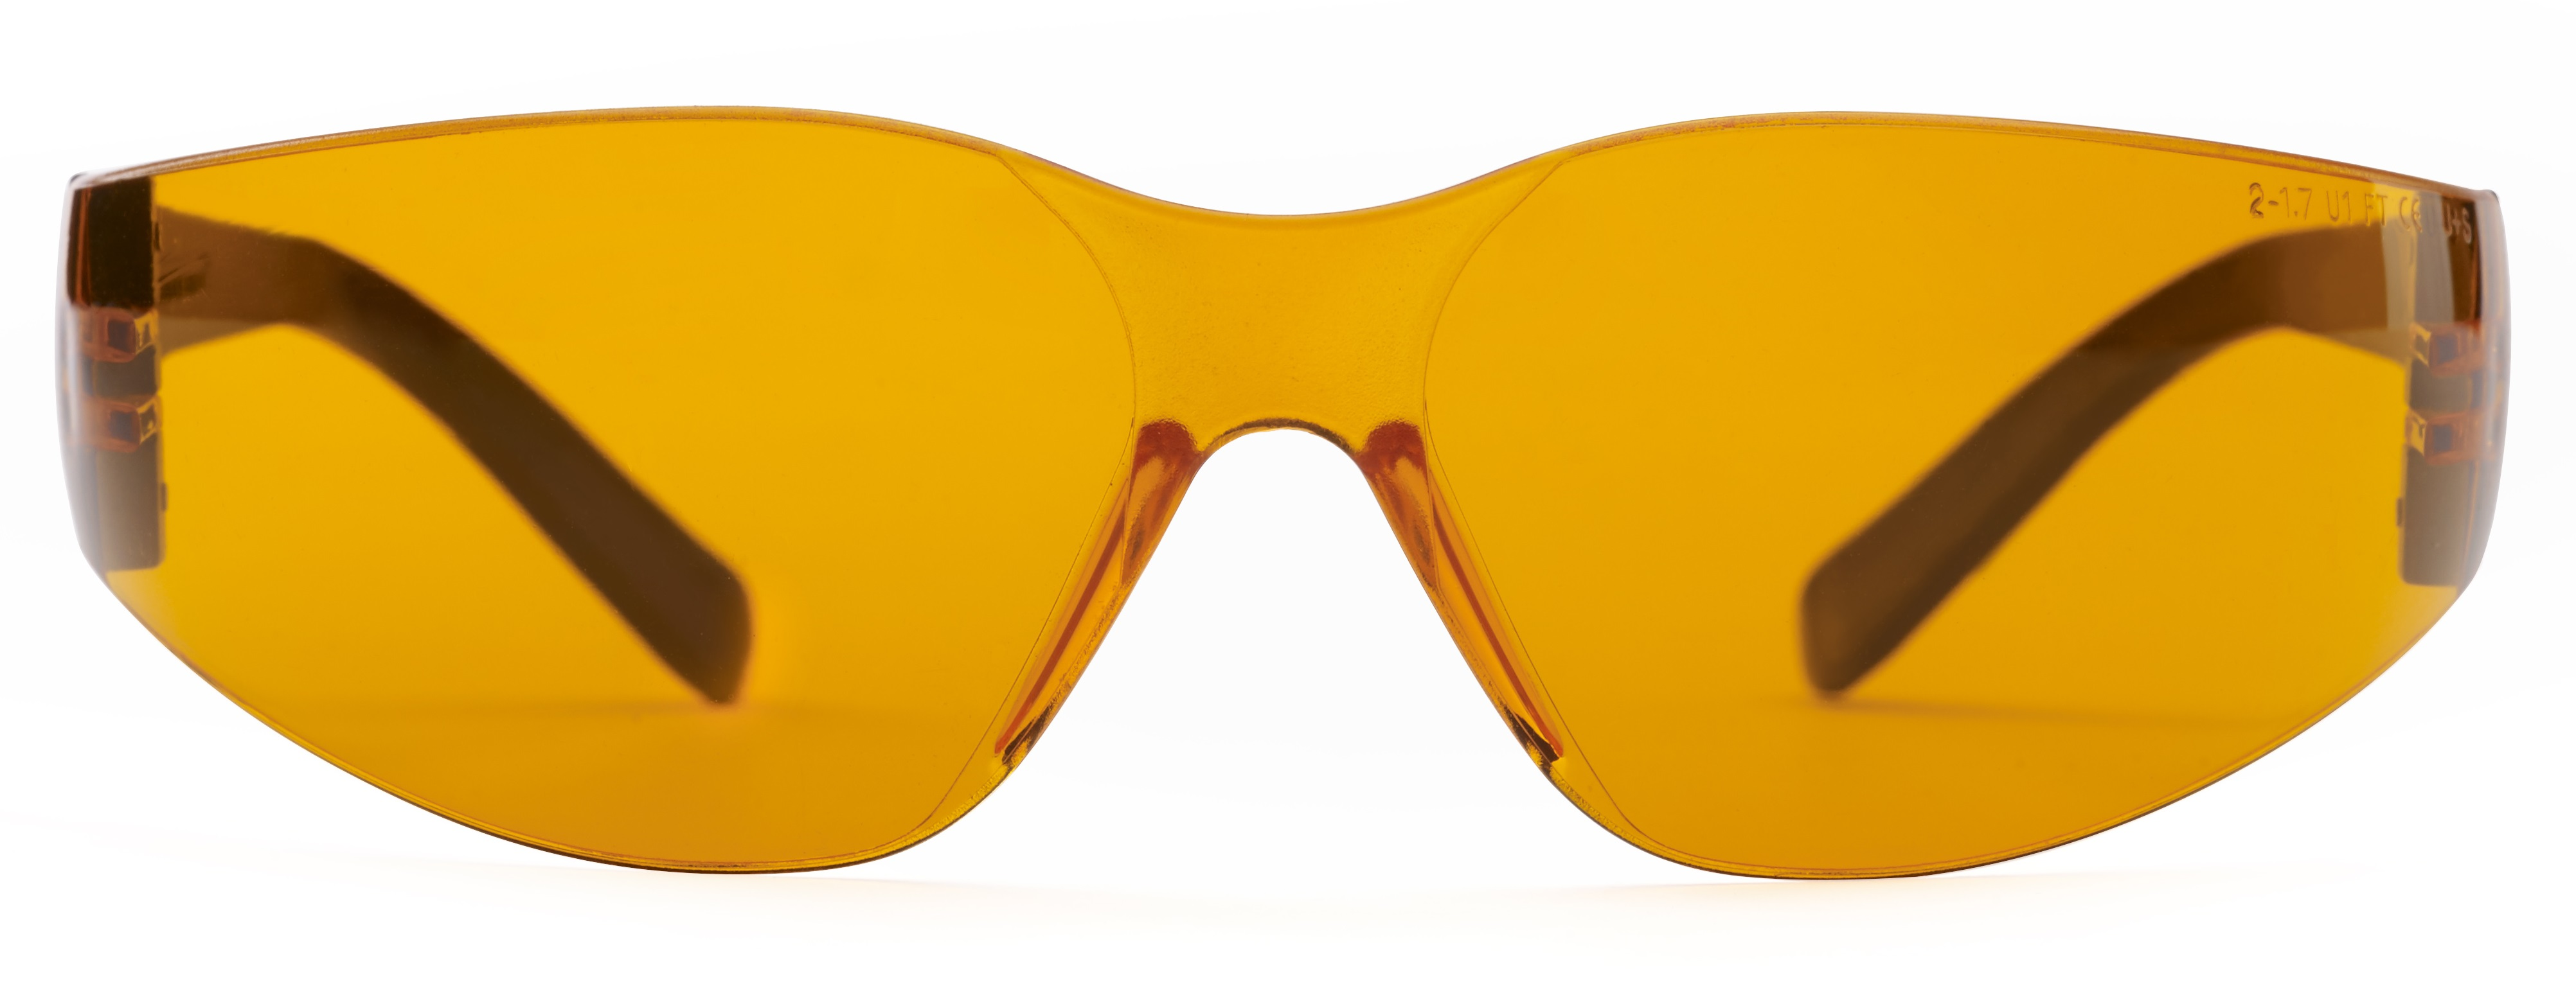 Glababora Monoart Glasses Baby orange védőszemüveg